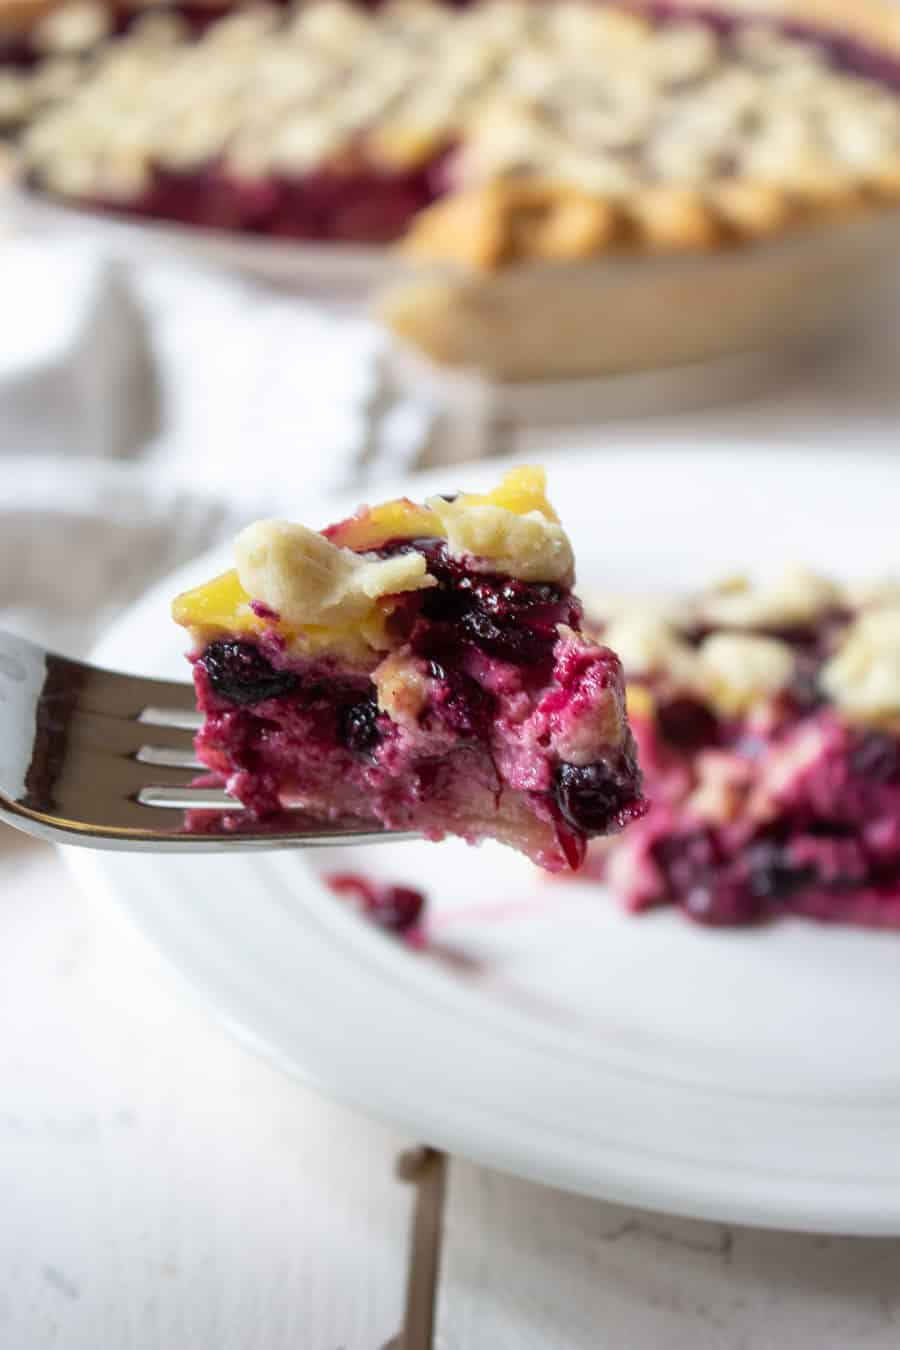 A fork with a bite of huckleberry pie.